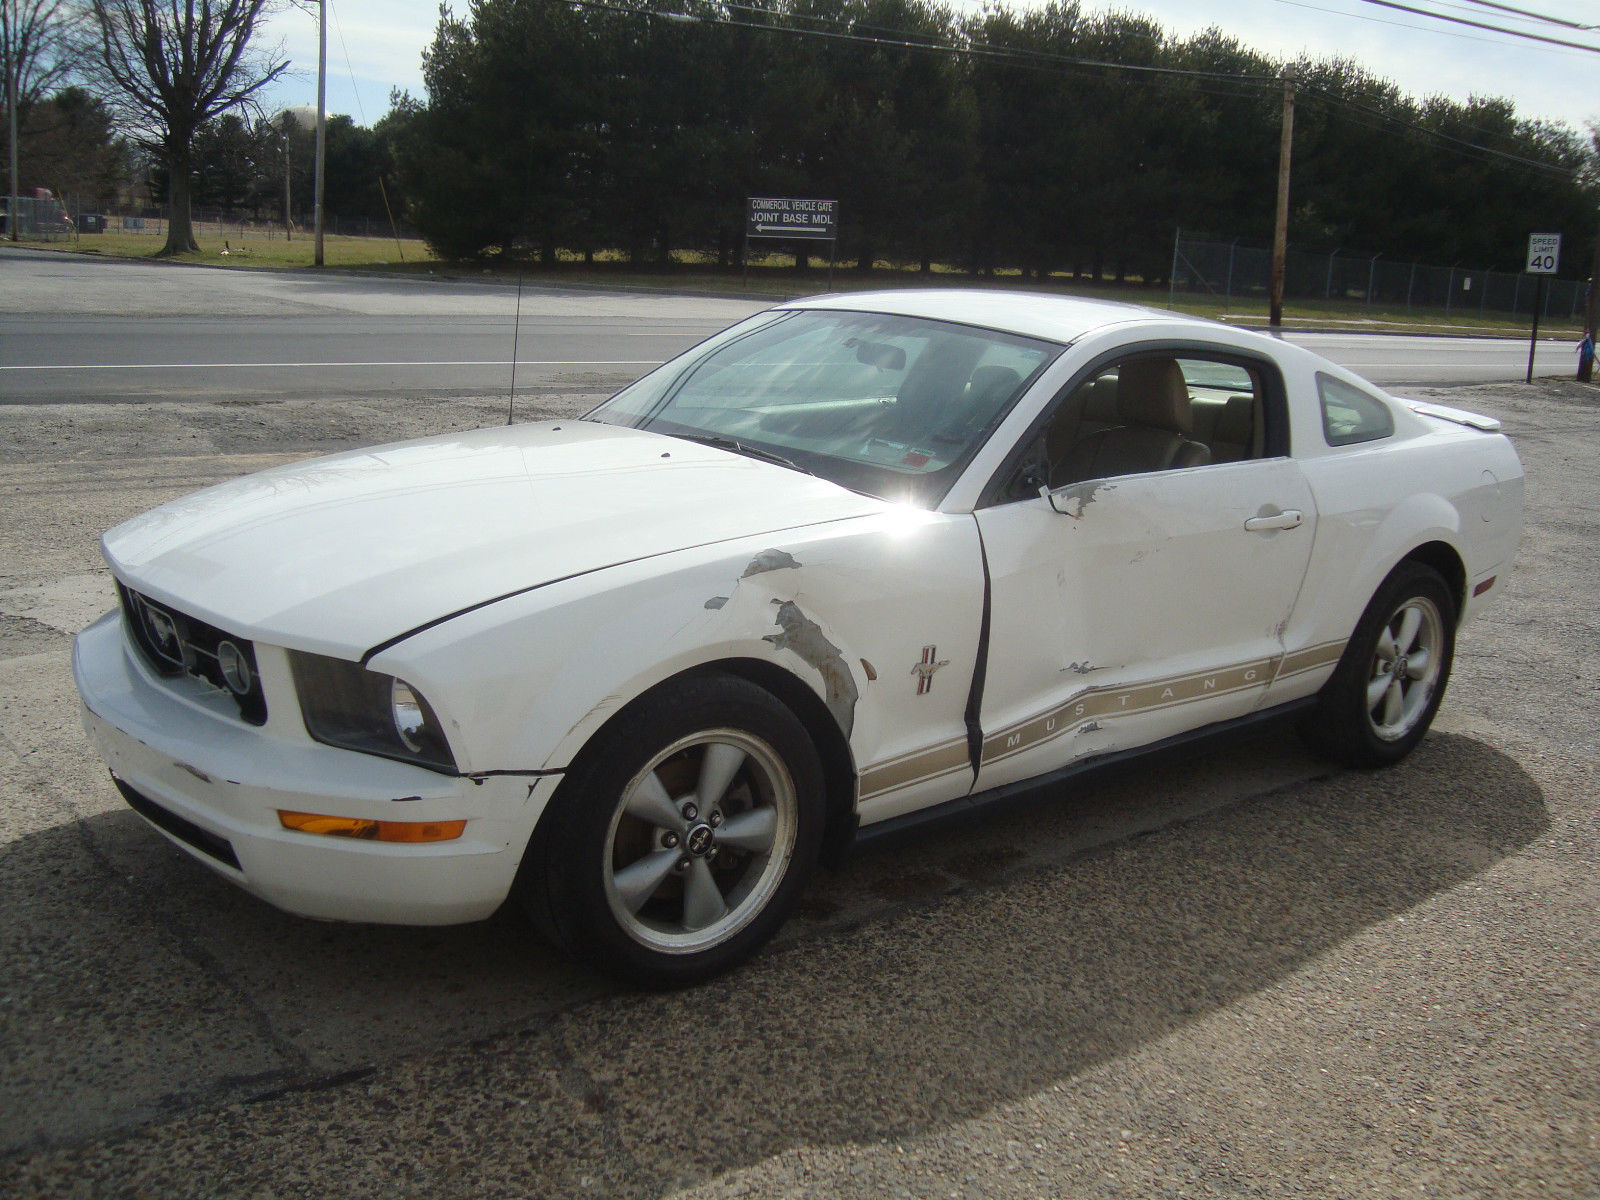 2016 White Ford Fusion For Sale >> 2007 Ford Mustang V6 Shaker500 Salvage Project for sale